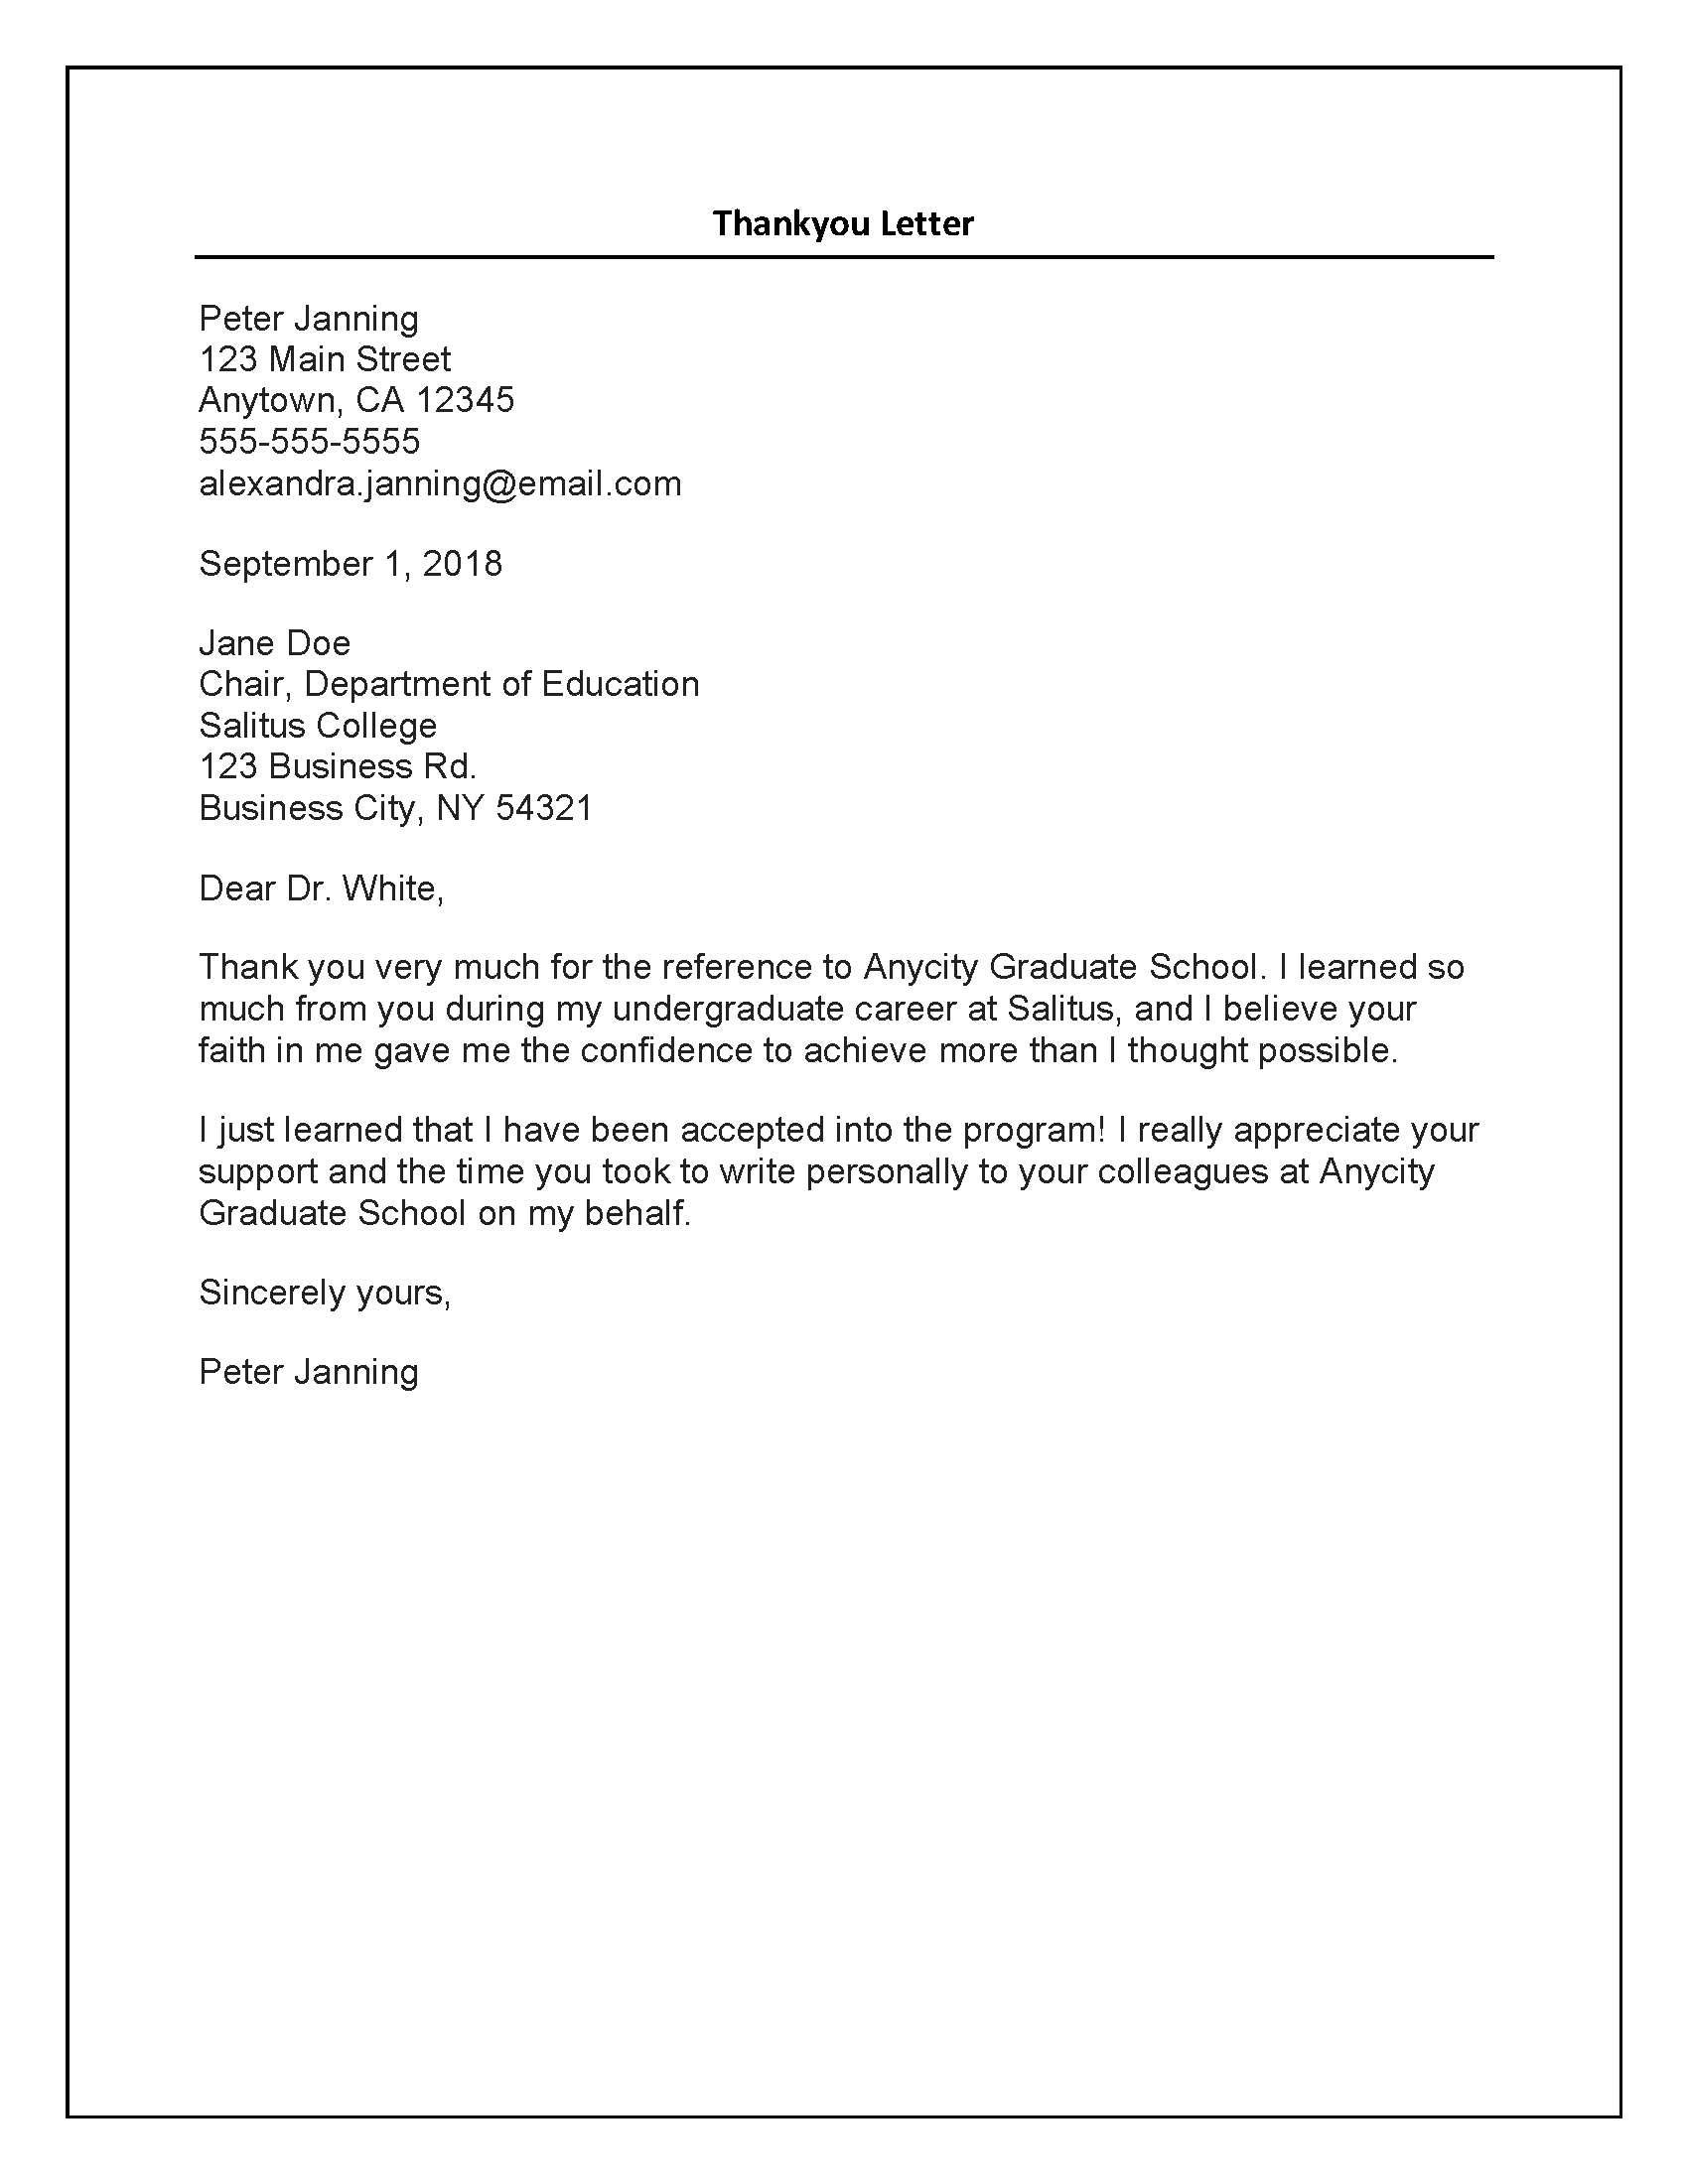 Letter Of Recommendation For A Teacher From A Colleague from scholarshipfellow.com